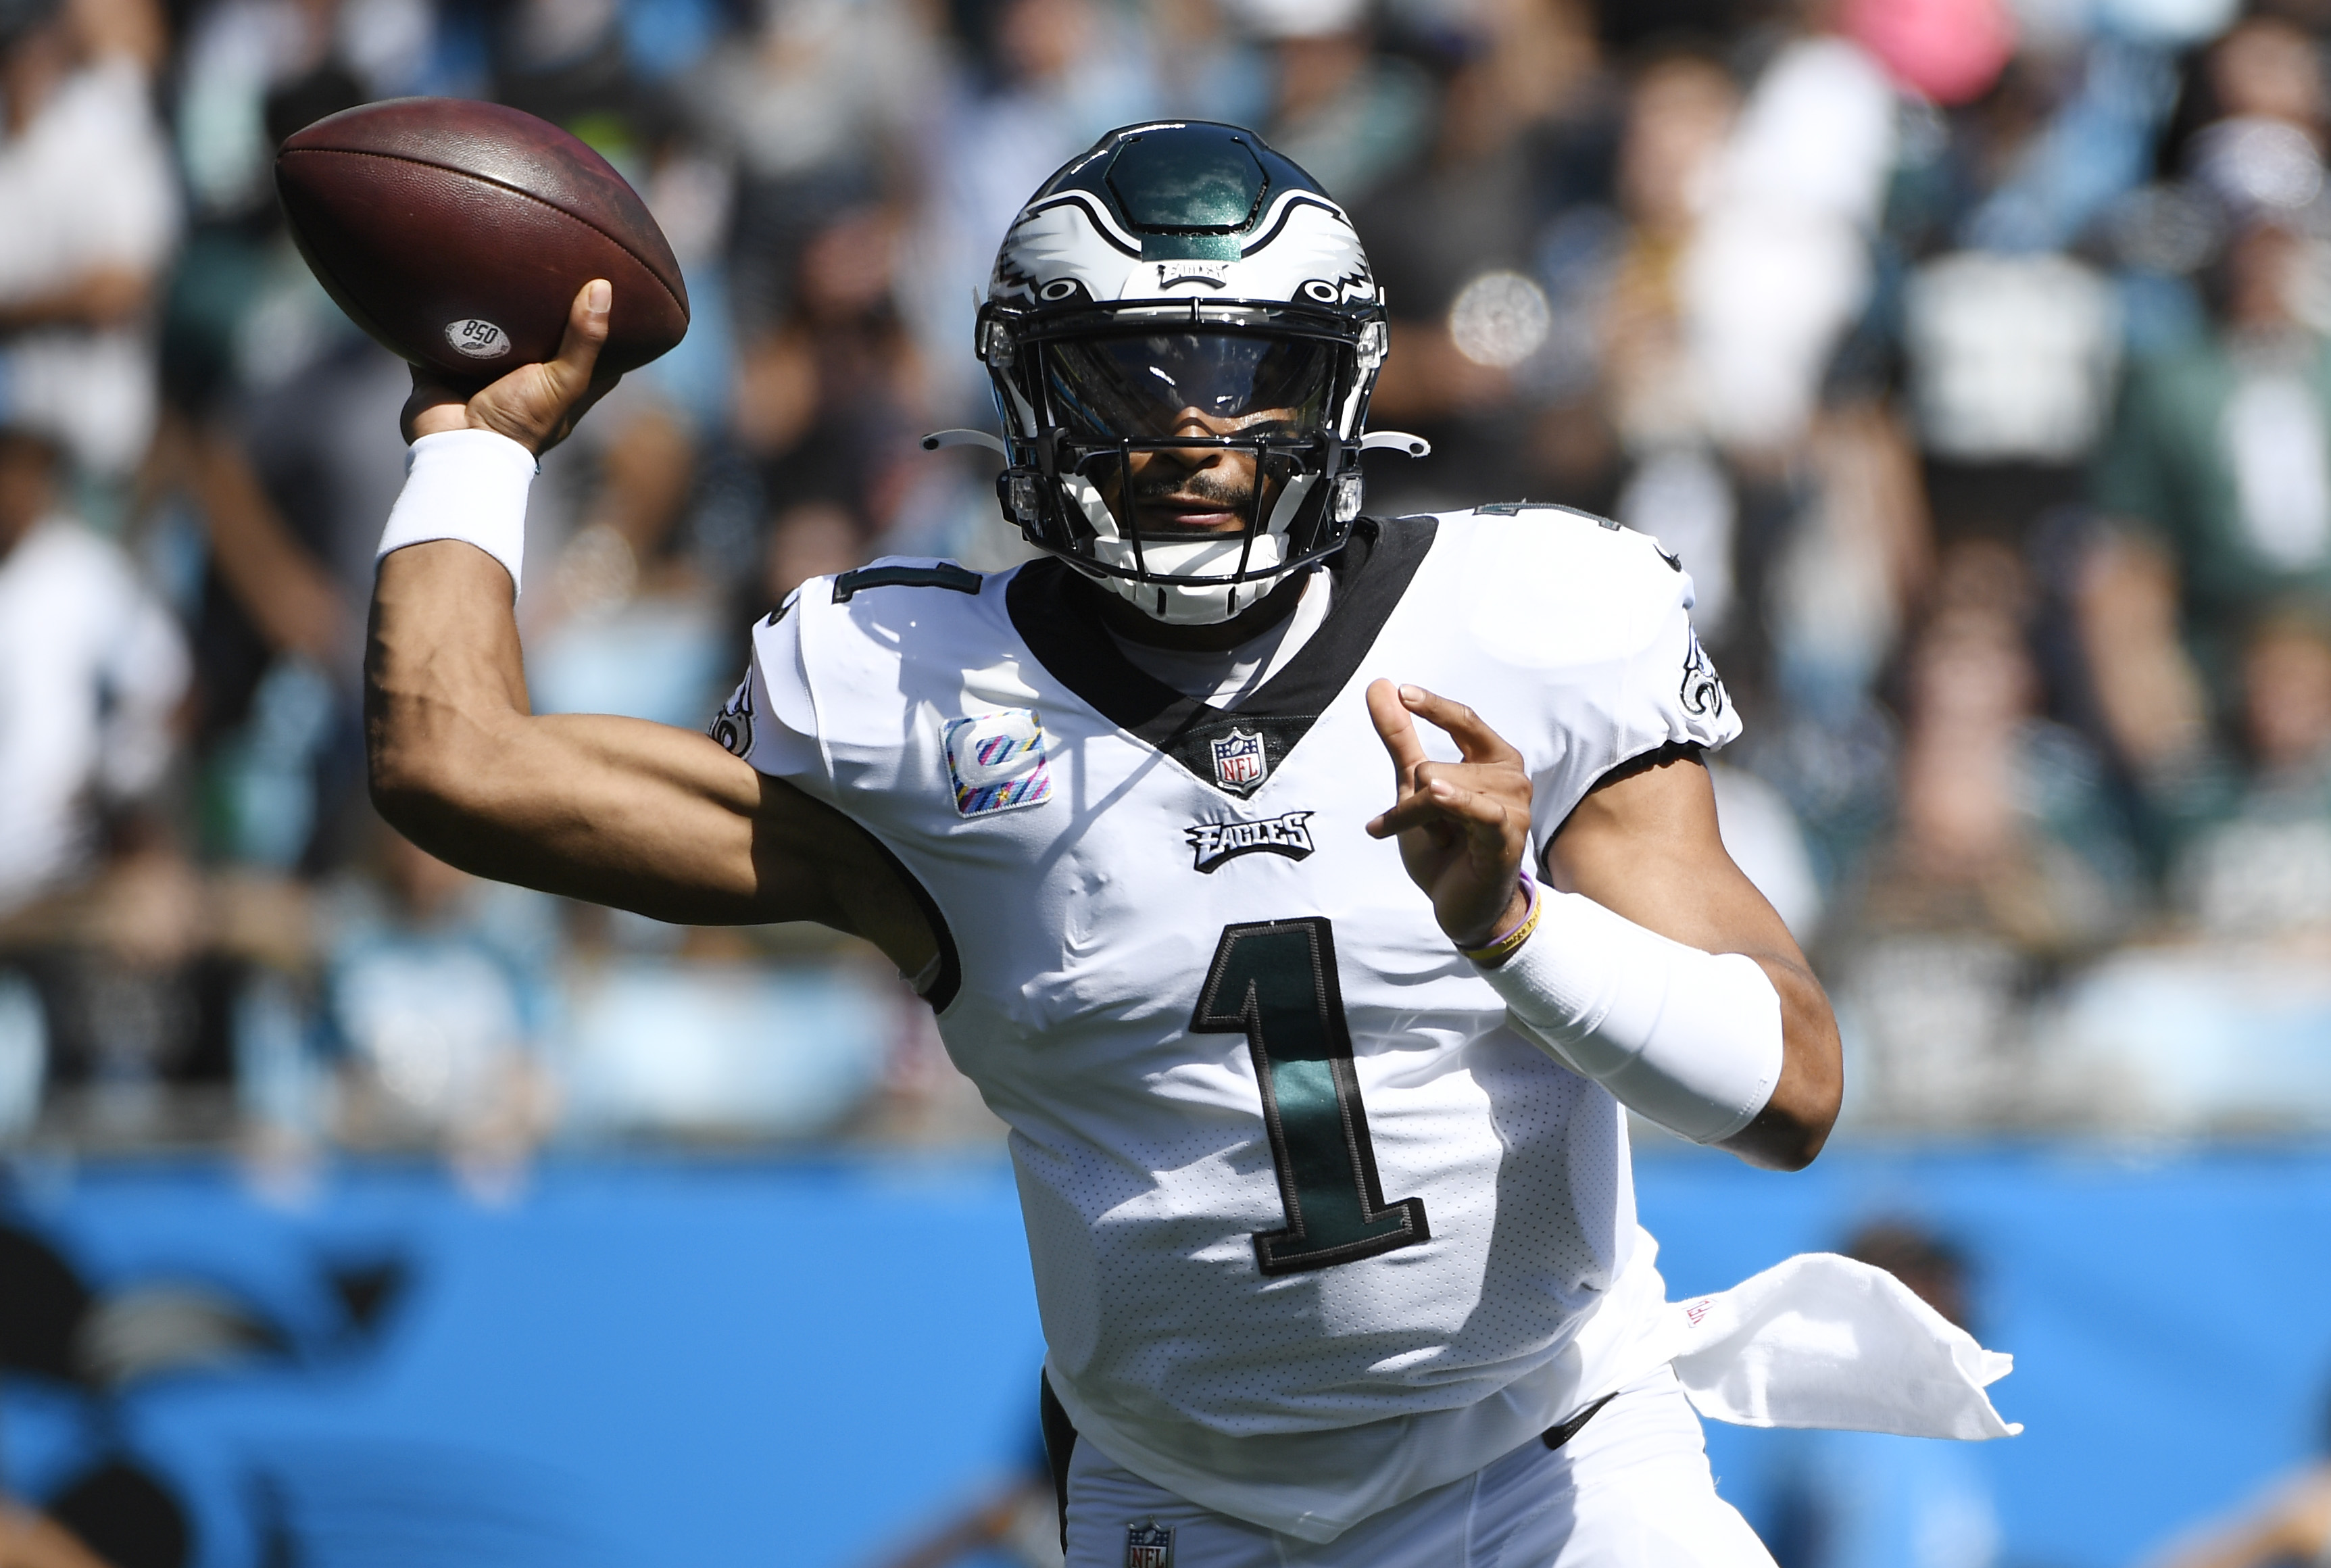 Jalen Hurts #1 of the Philadelphia Eagles throws the ball during the first half of the football game against the Carolina Panthers at Bank of America Stadium on October 10, 2021 in Charlotte, North Carolina.